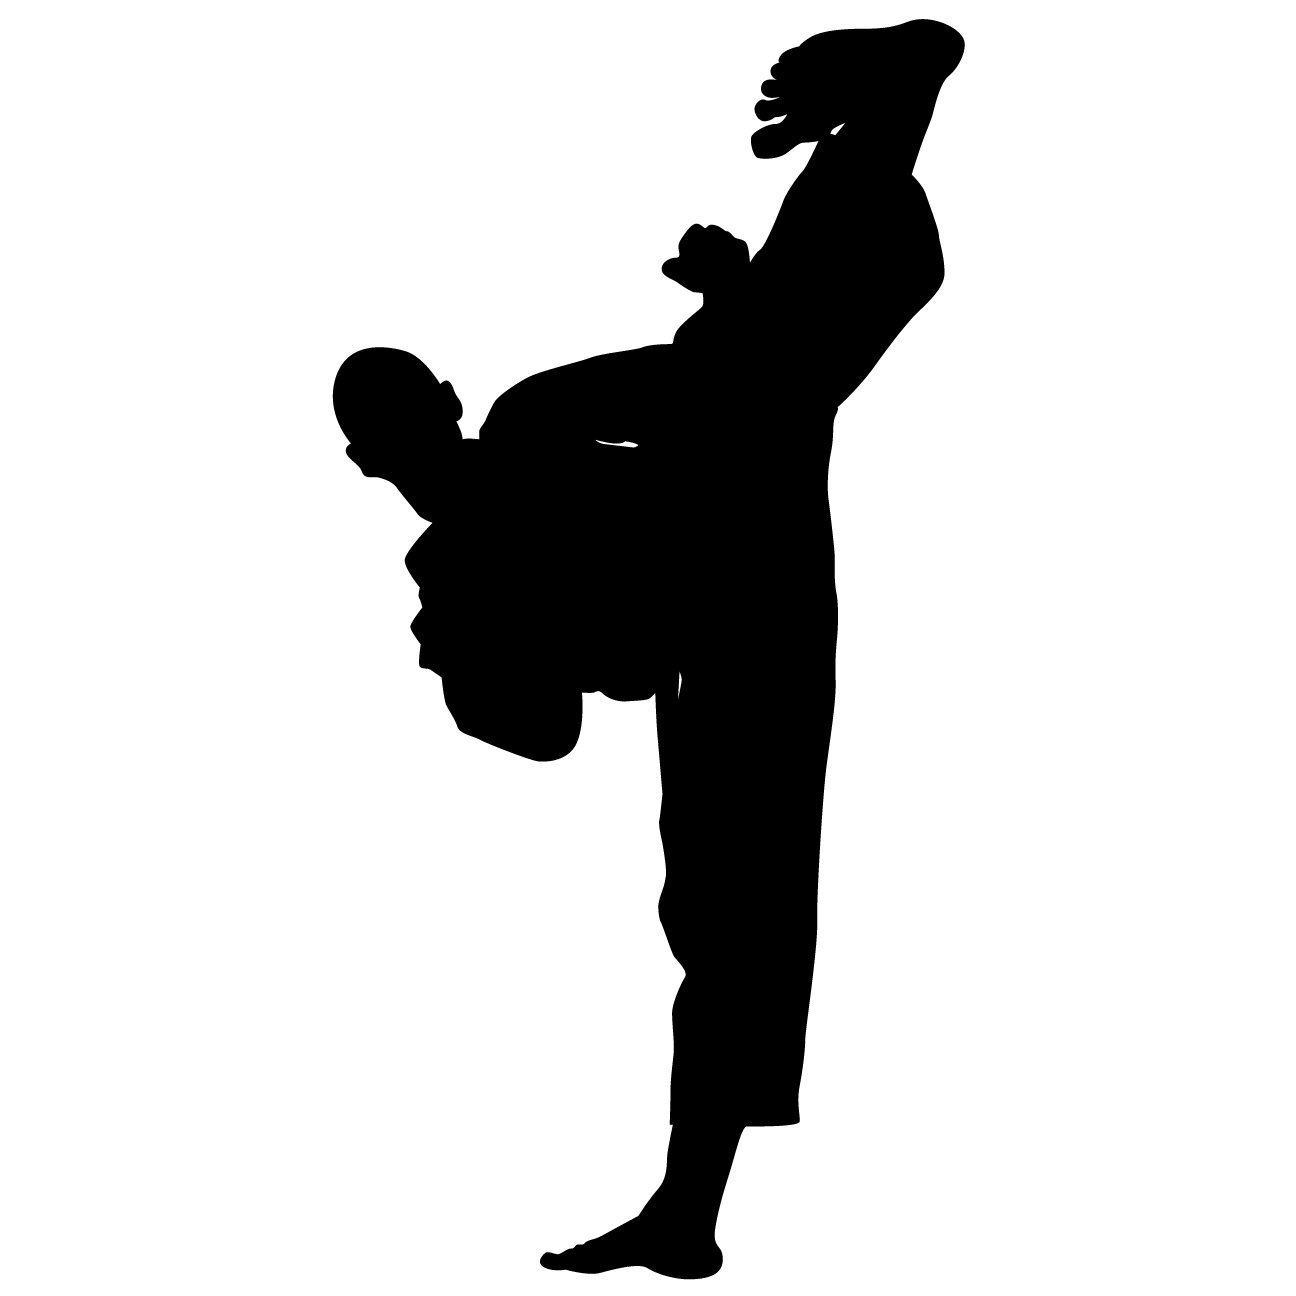 Martial Arts Wall Decal Sticker 43 - Decal Stickers and Mural for Kids Boys Girls Room and Bedroom. Karate Sport Wall Art for Home Decor and Decoration - Martial Art Kung Fu Taekwondo Silhouette Mural